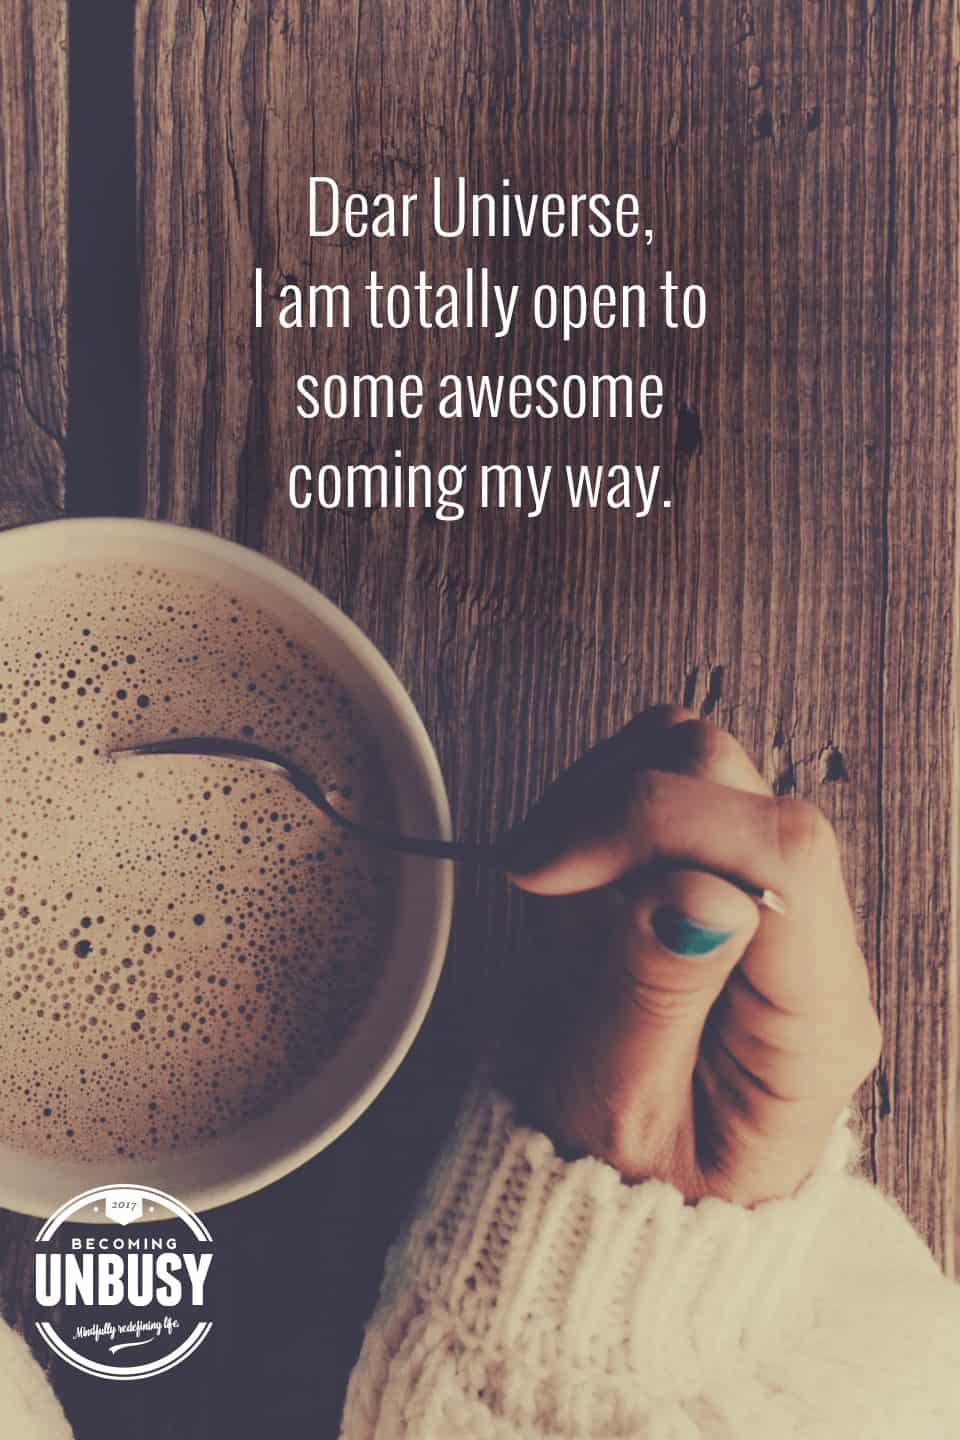 10 Good Morning Quotes - Dear Universe, I am totally open to some awesome coming my way. #lifequotes #quotes #goodmorningquotes #coffeequotes *Start the day off right with these morning inspirational quotes. Love this good morning motivation!